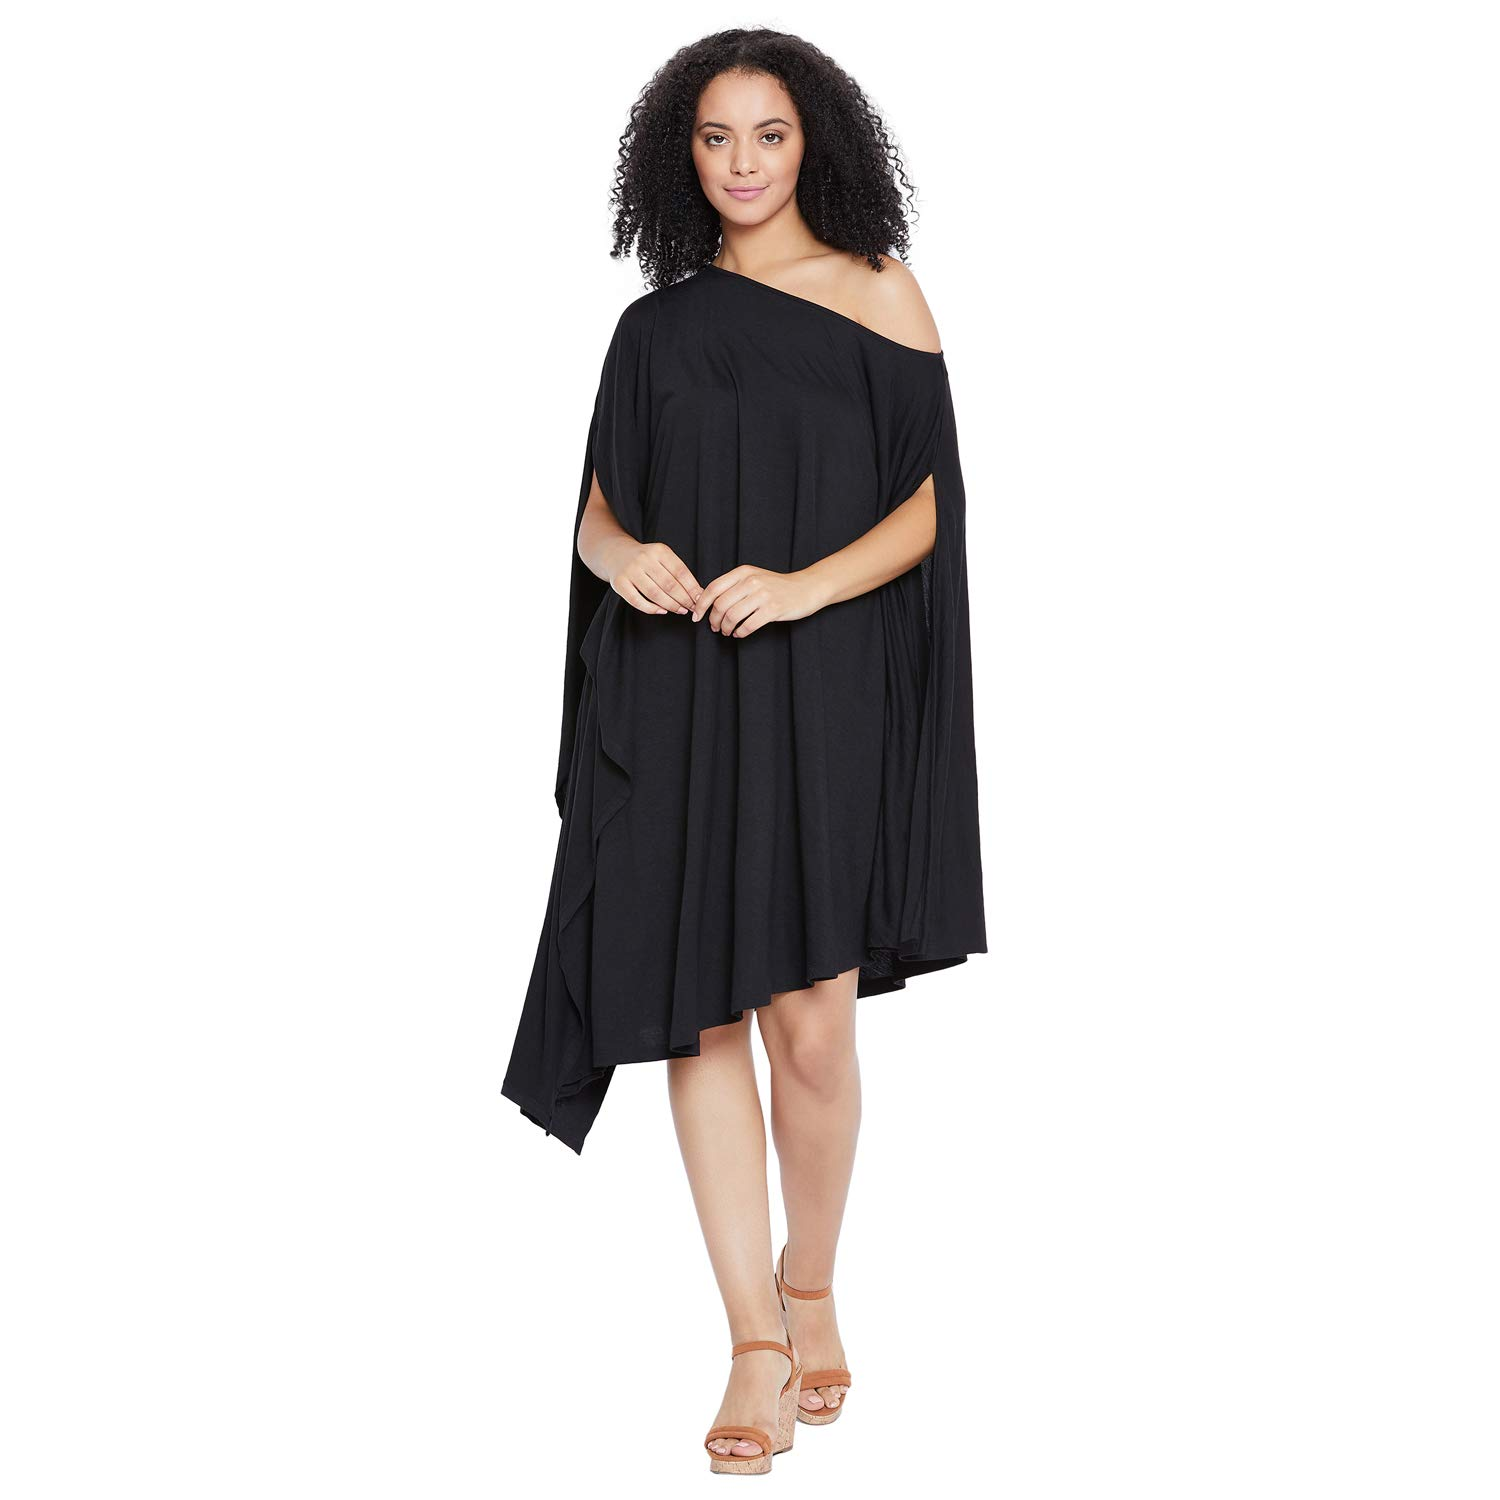 FEMELLA Women's Black Off Shoulder Assymetric Dress